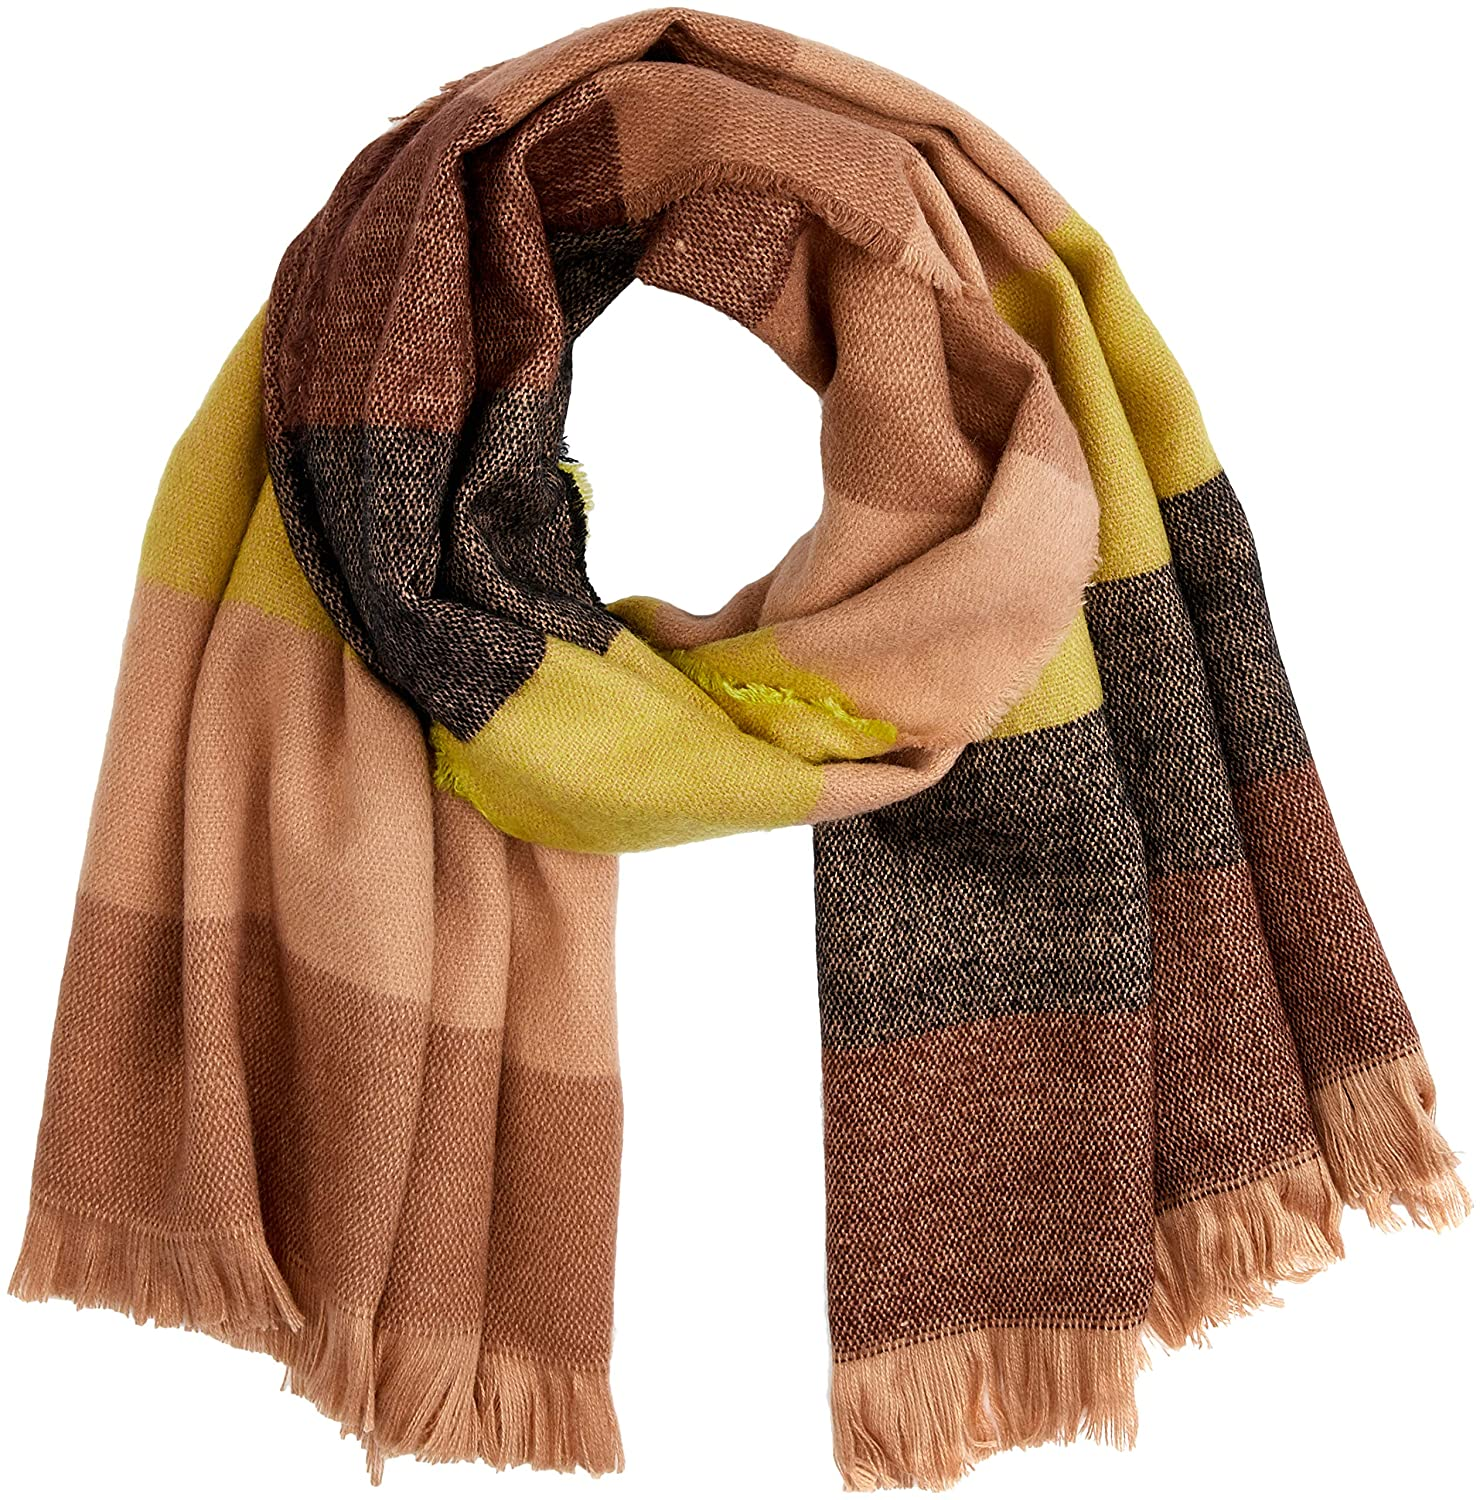 Scotch & Soda R´ Belle Mä dchen Schal Oversized Scarf in Soft Woven Quality, Mehrfarbig (Combo A 217), One Size (Herstellergrö ß e: OS) Scotch & Soda R´Belle 147141